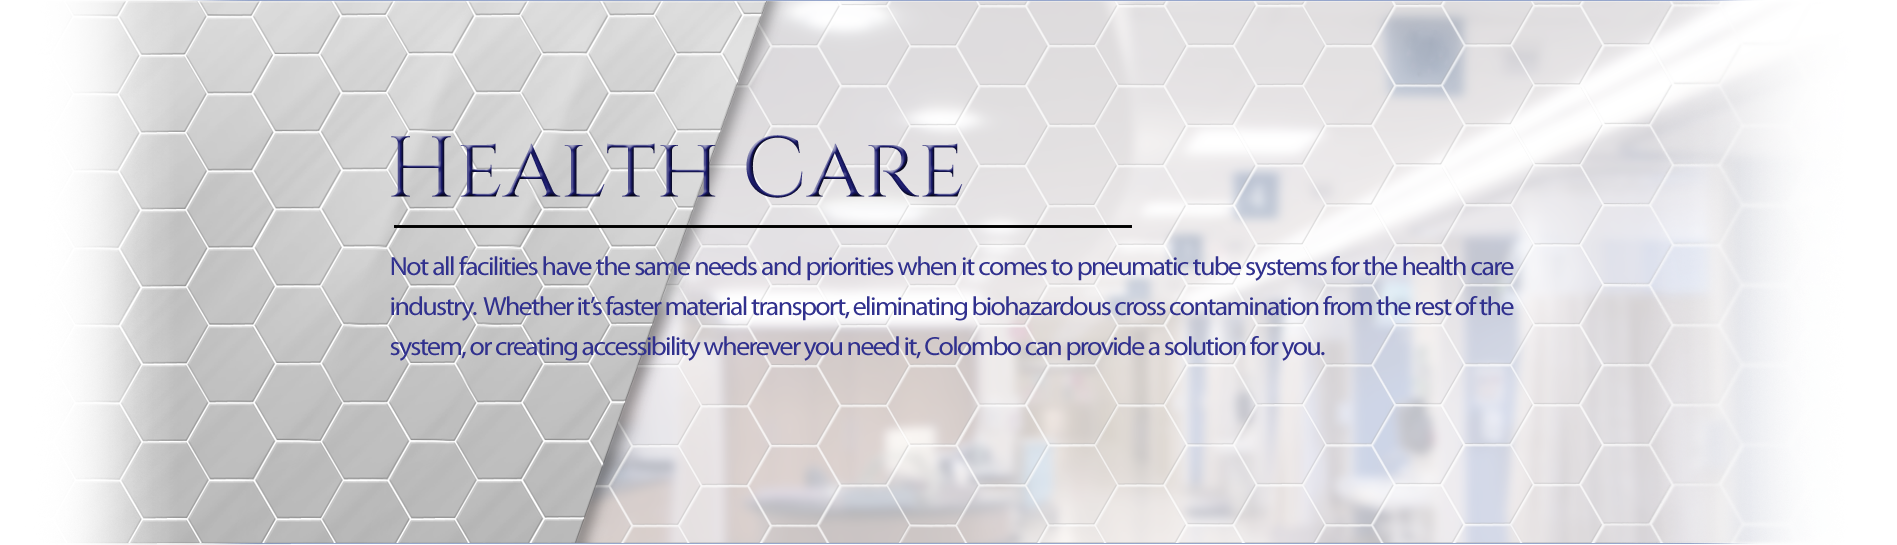 Not all facilities have the same needs and priorities when it comes to pneumatic tube systems for the health care industry. Whether it's faster material transport, eliminating biohazards cross contamination from the rest of the system, or creating accessibility wherever you need it, Colombo can provide a solution for you.